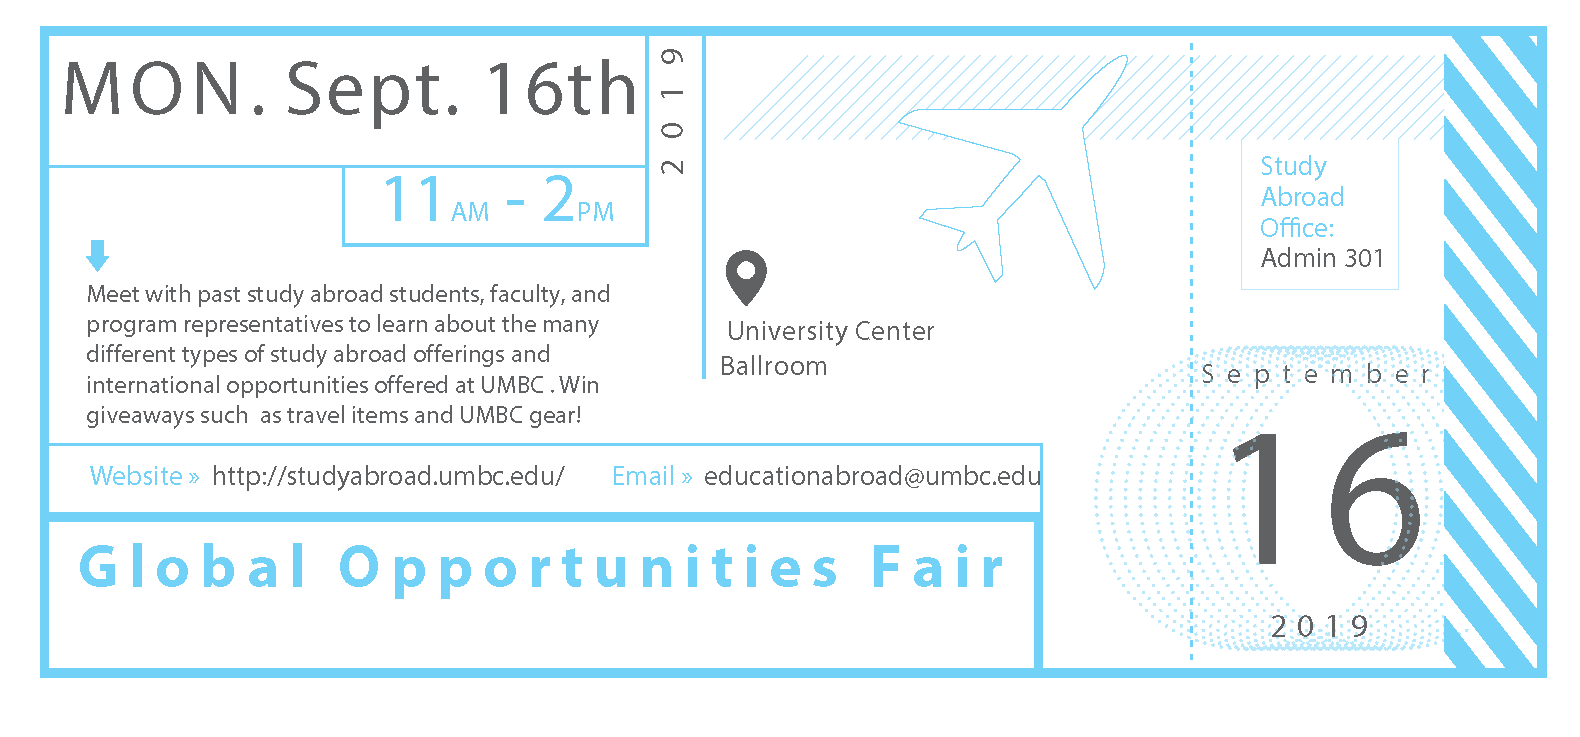 Global Opportunities Fair